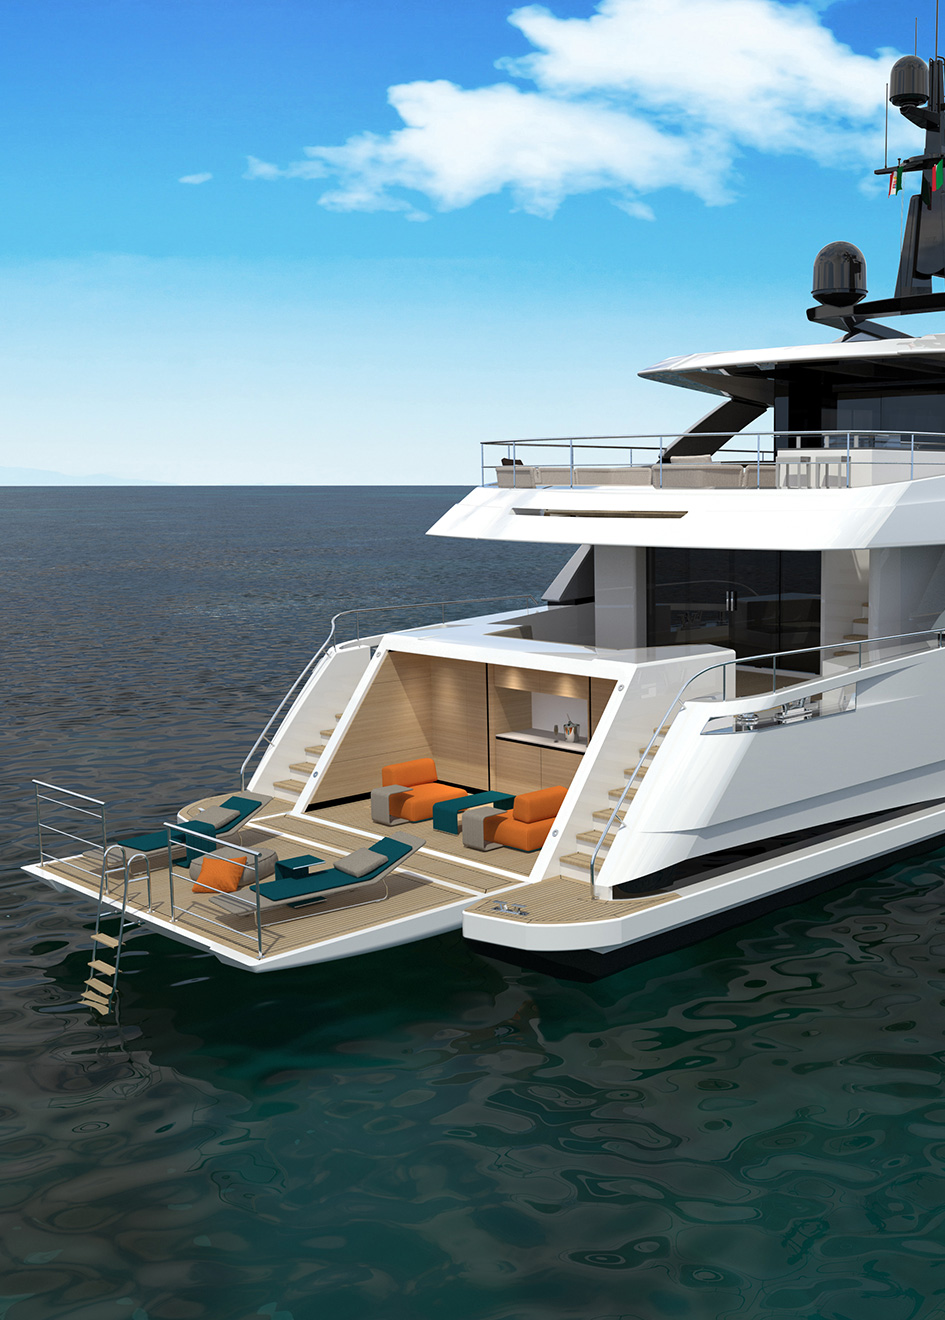 aft-view-of-the-wider-130-yacht